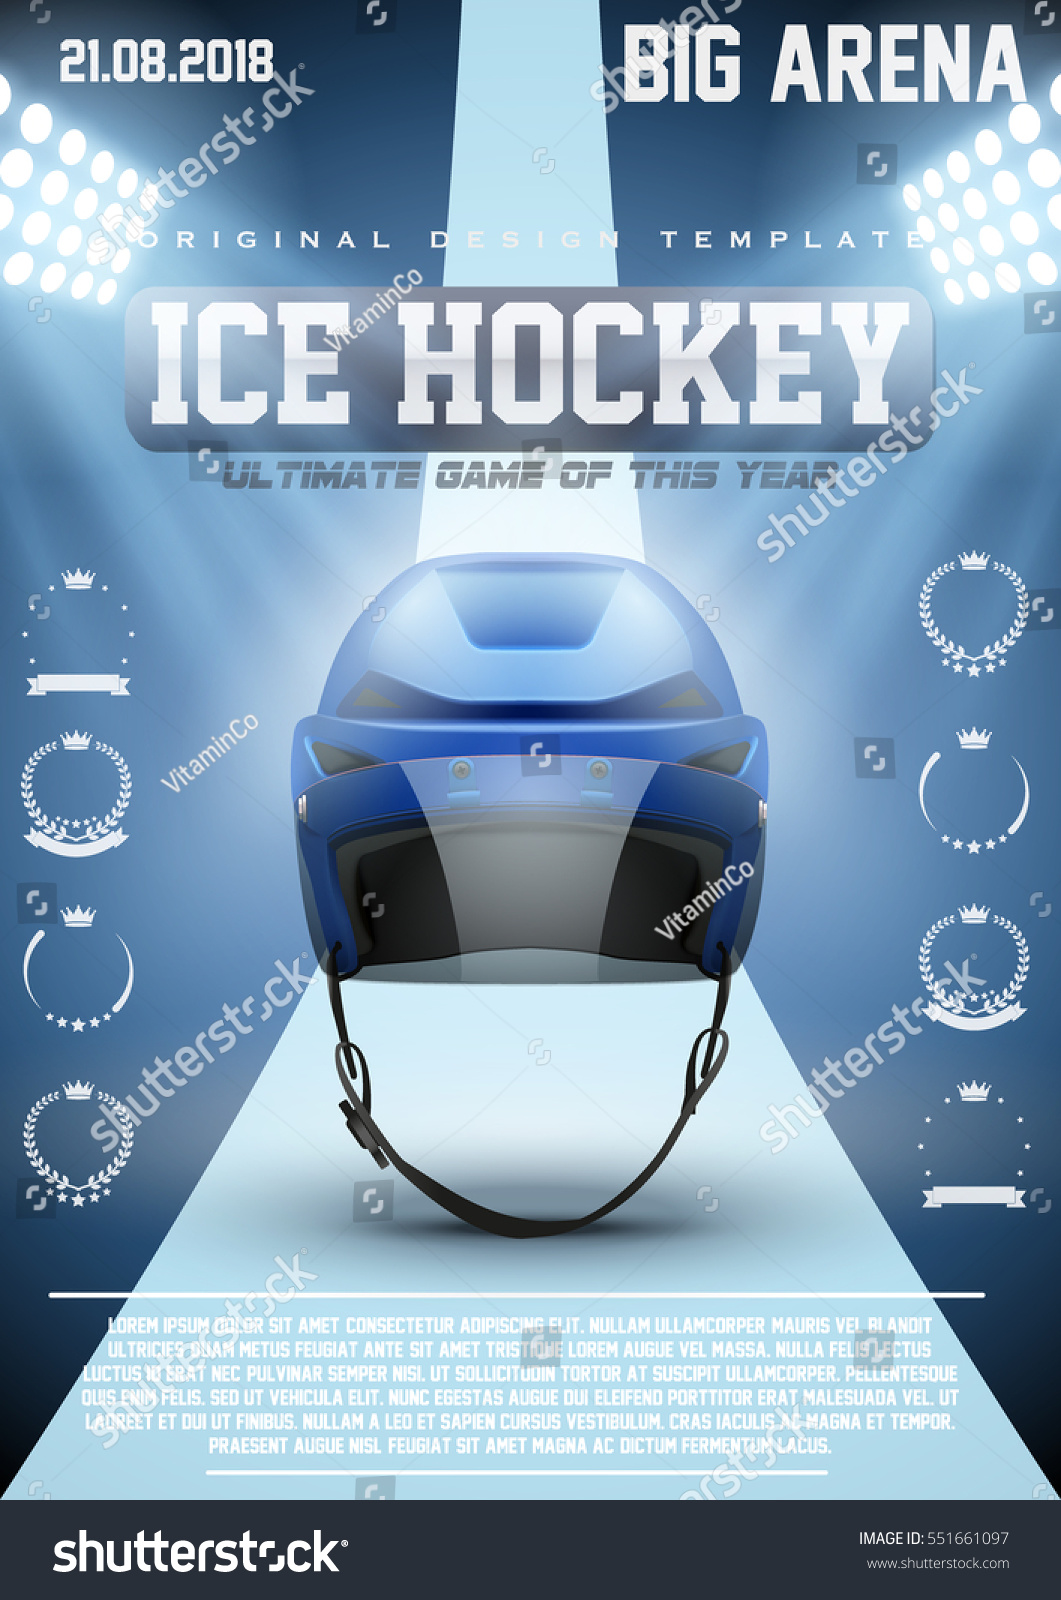 Poster Template Ice Hockey Games With Player Helmet Cup And Tournament Advertising Sport Event